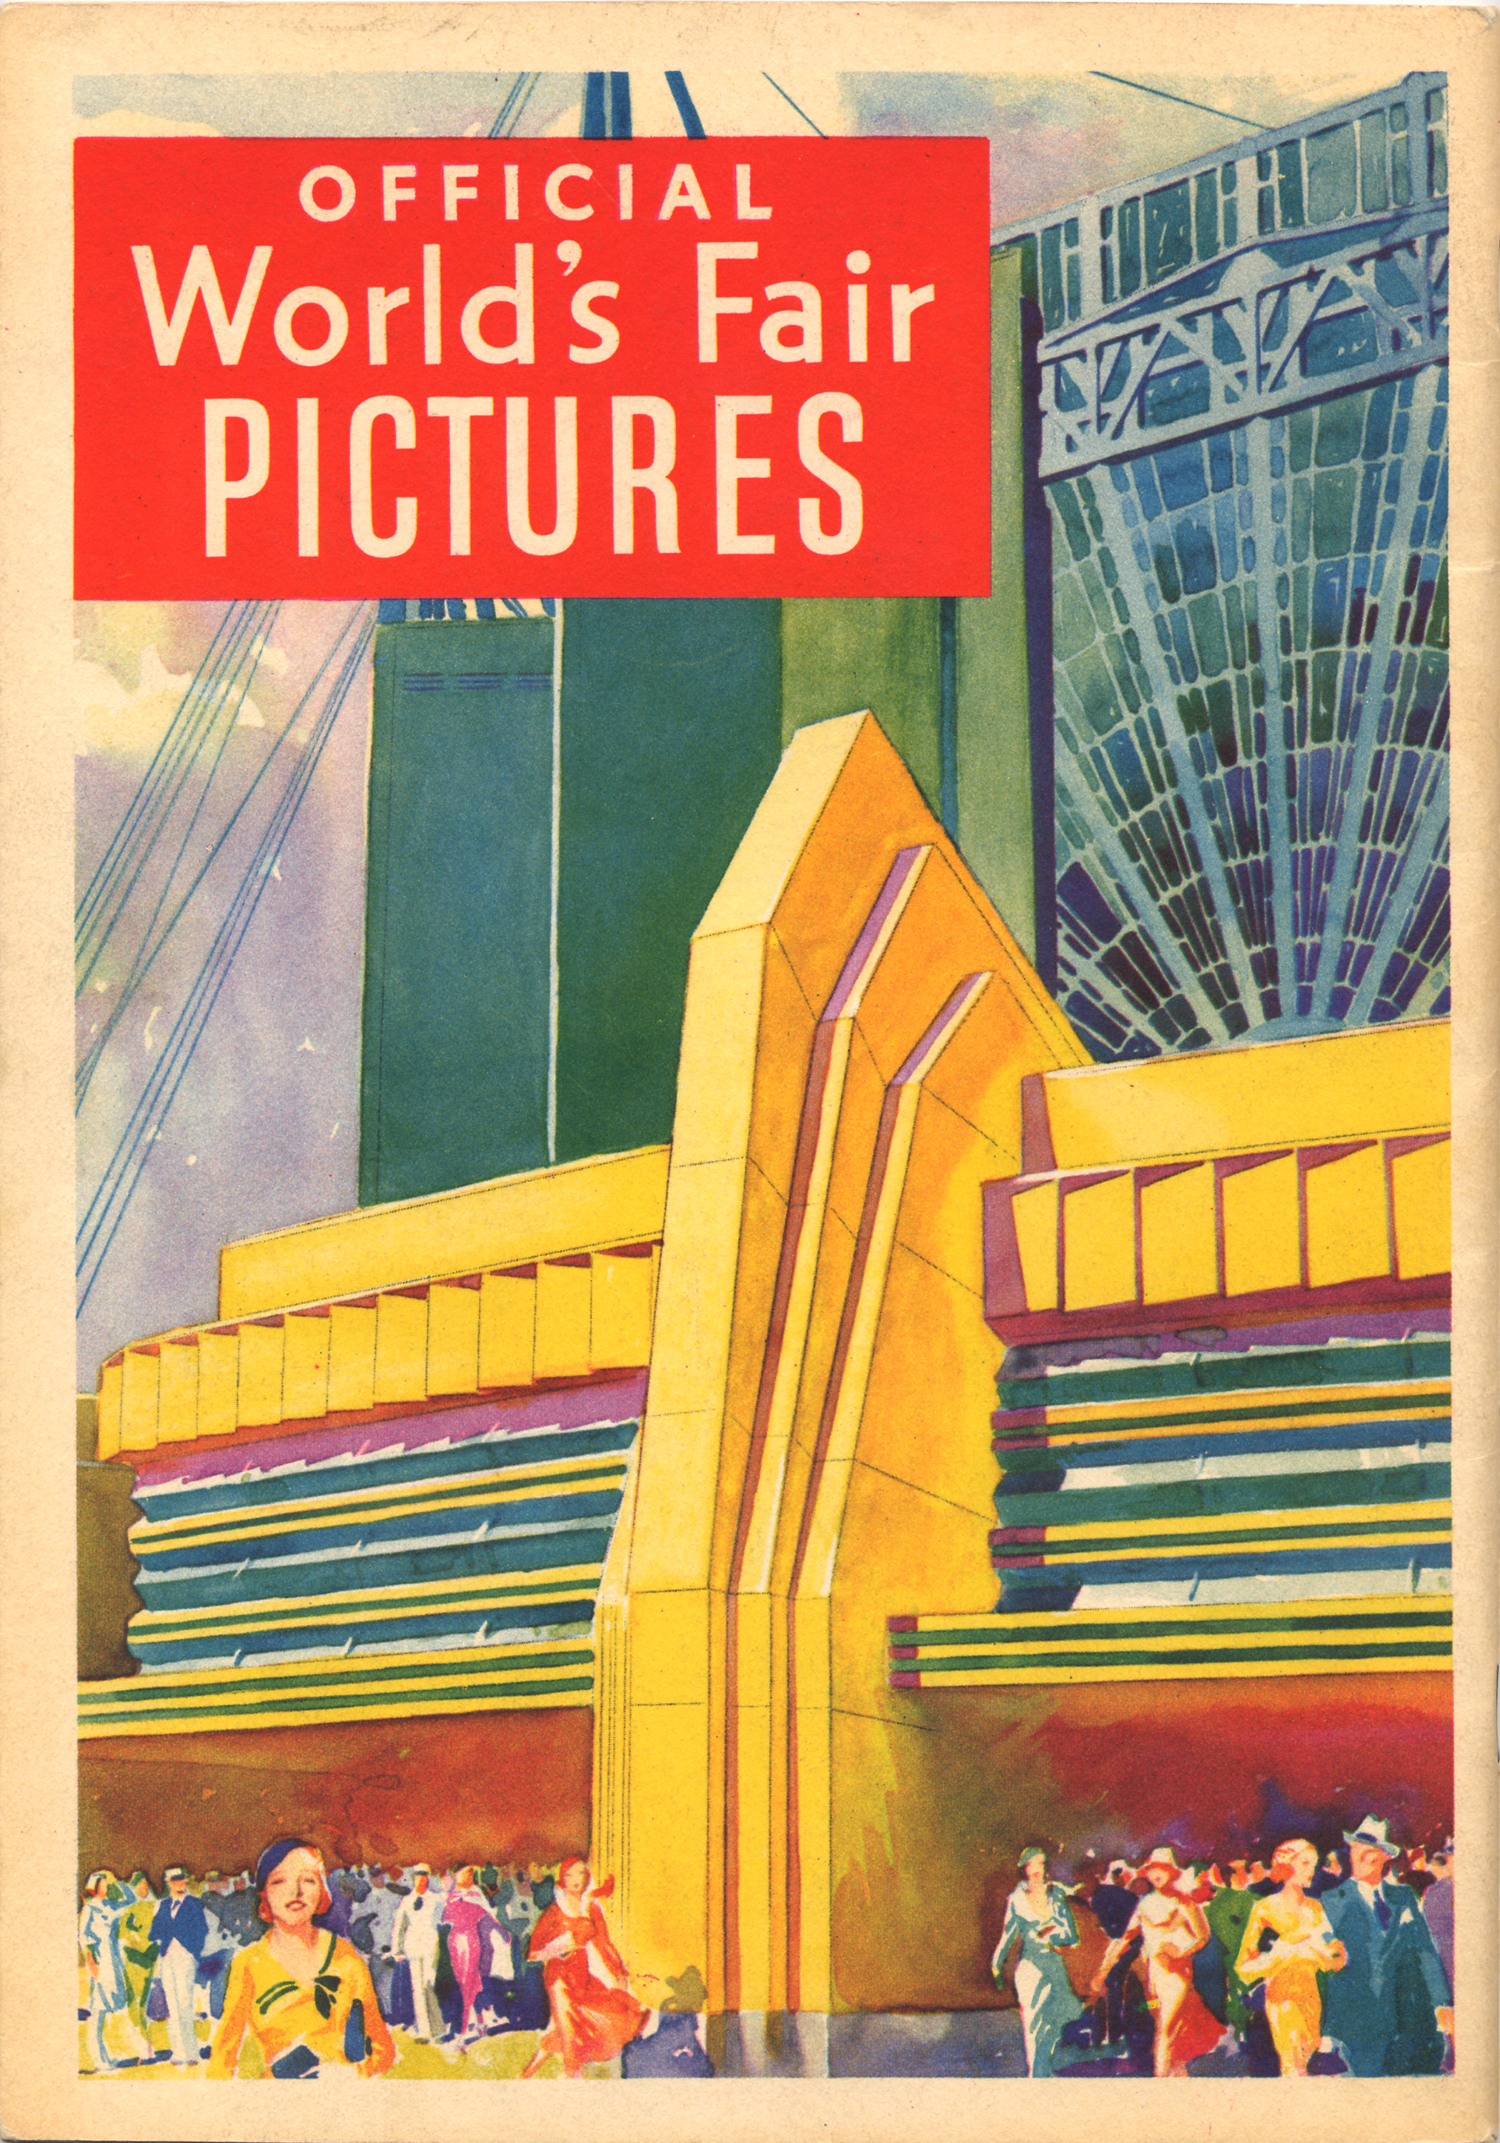 Official World's Fair Pictures Souvenir Book, 1933.